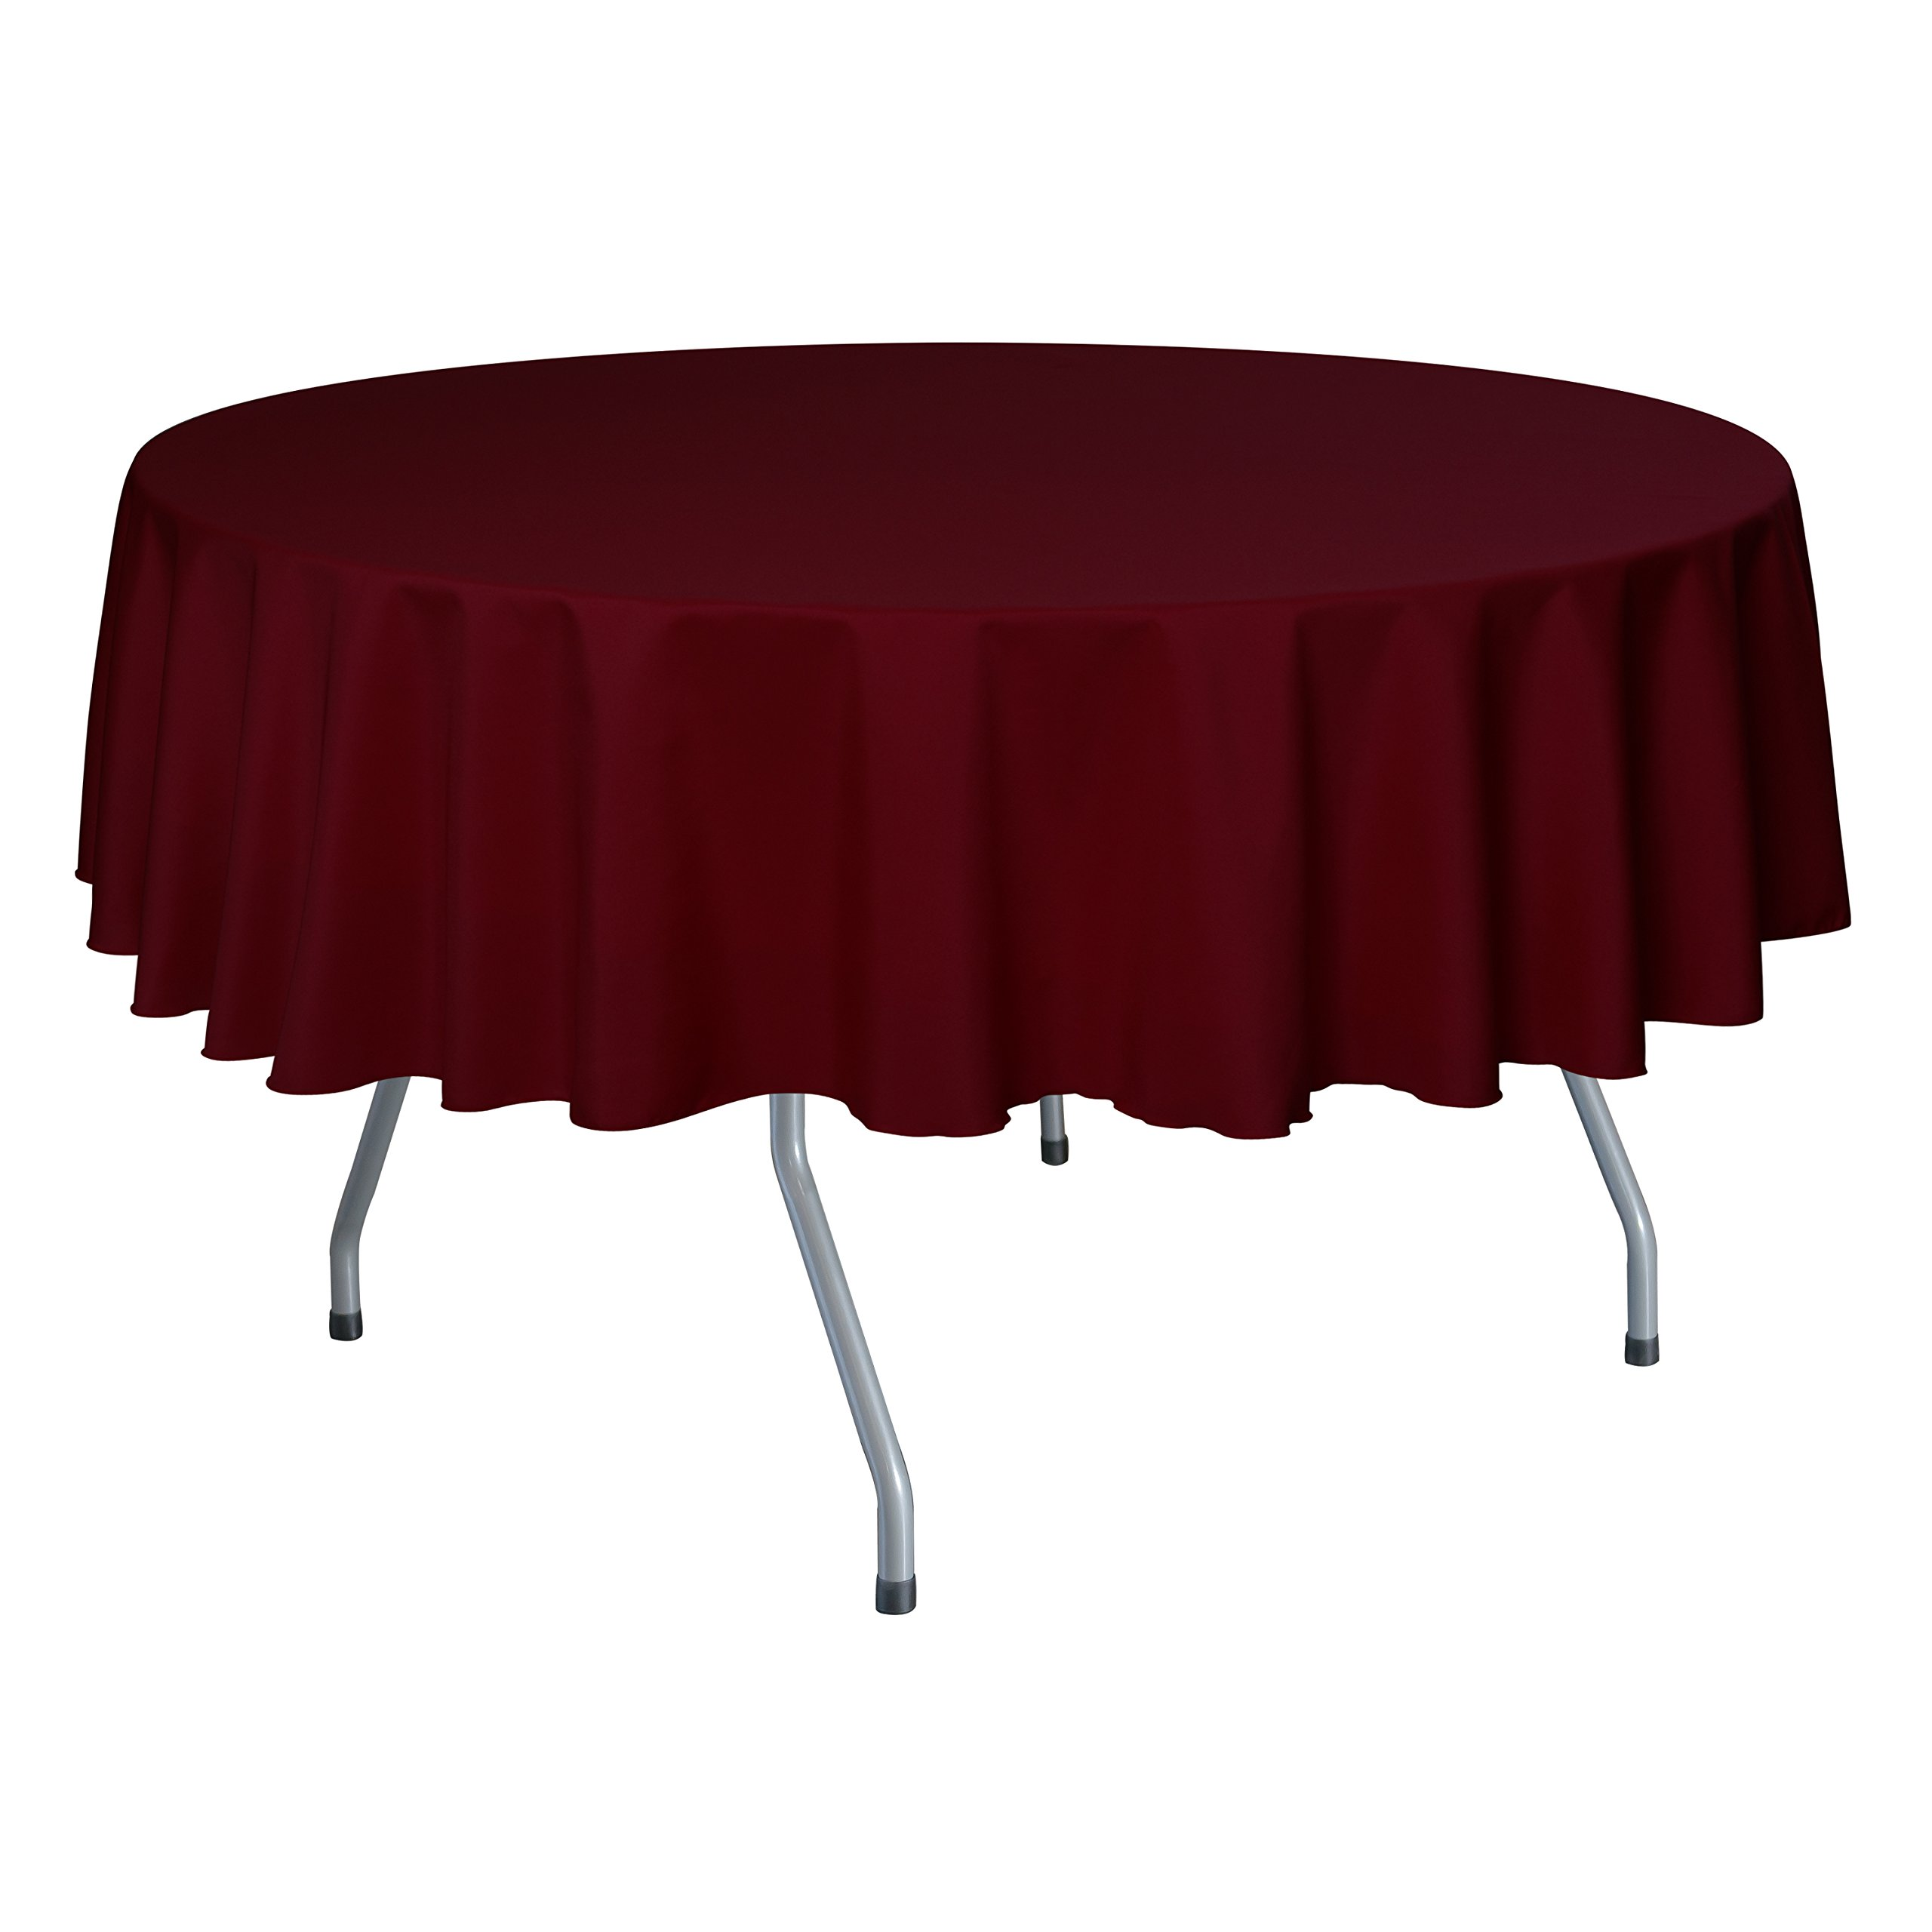 Ultimate Textile (10 Pack) 70-Inch Round Polyester Linen Tablecloth - for Wedding, Restaurant or Banquet use, Cherry Red